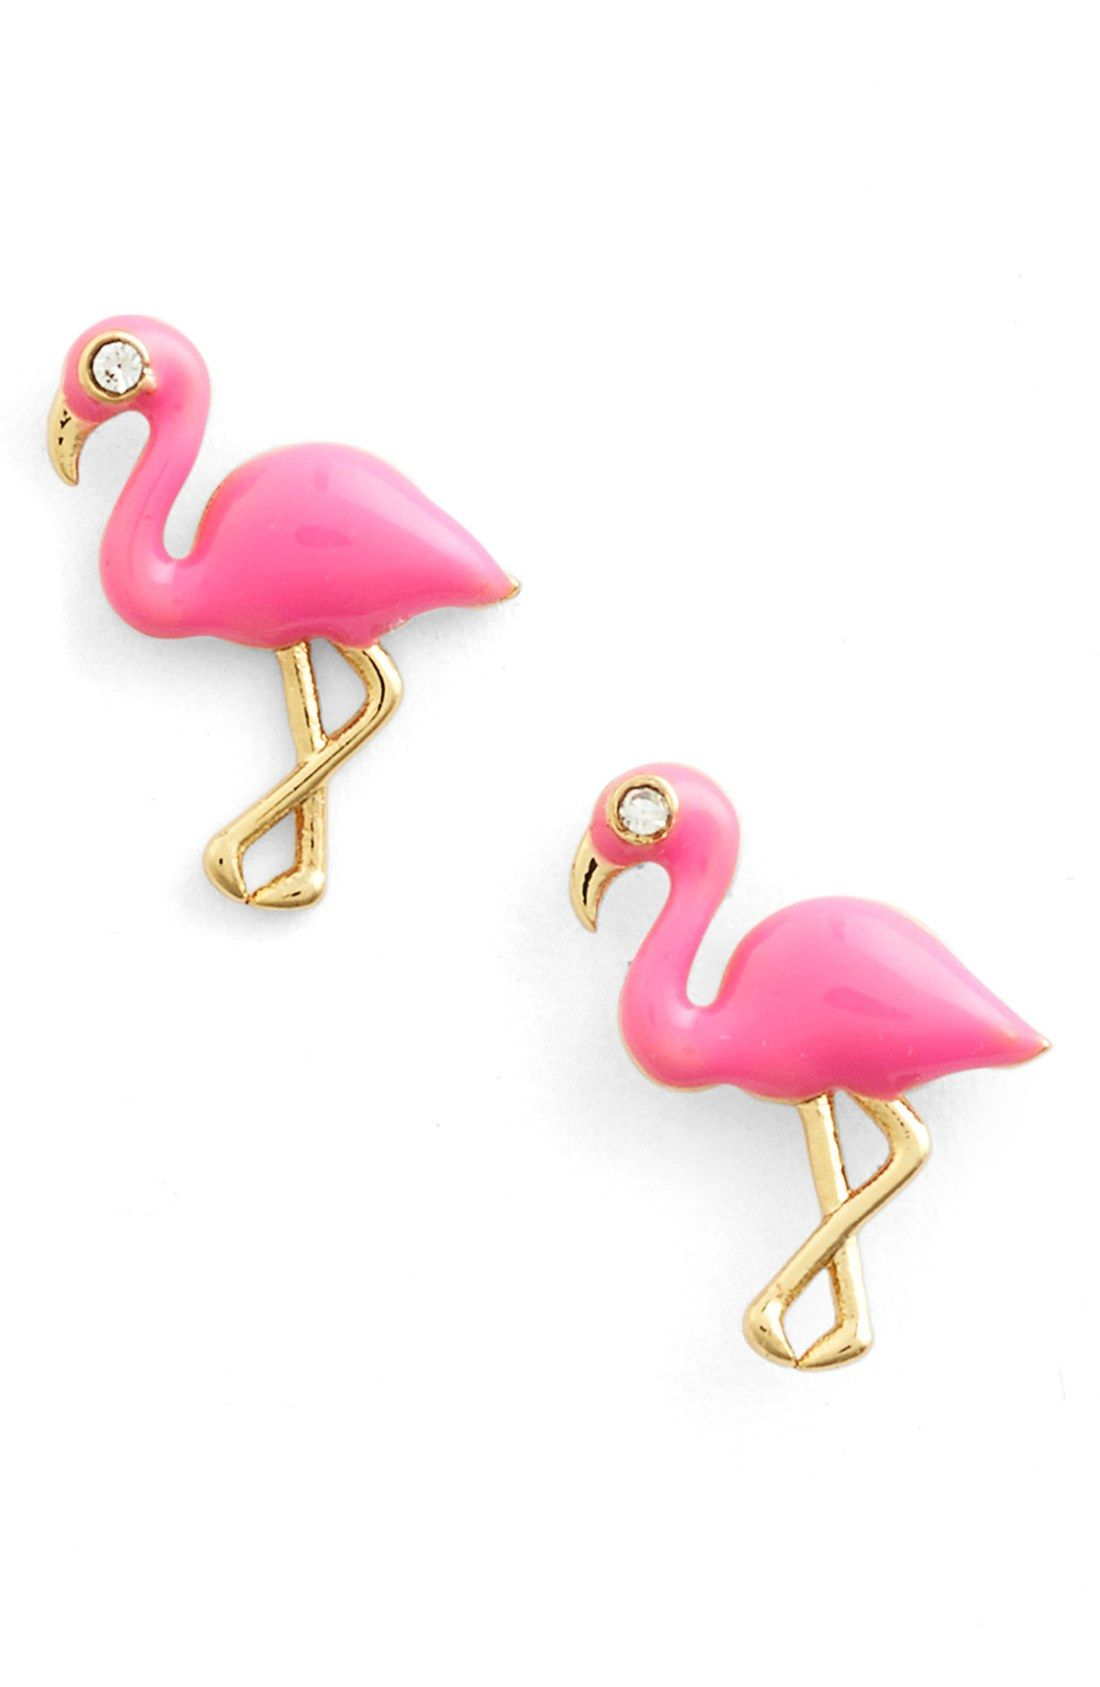 These quirky, pink earrings are all the more fun because of the added crystals.